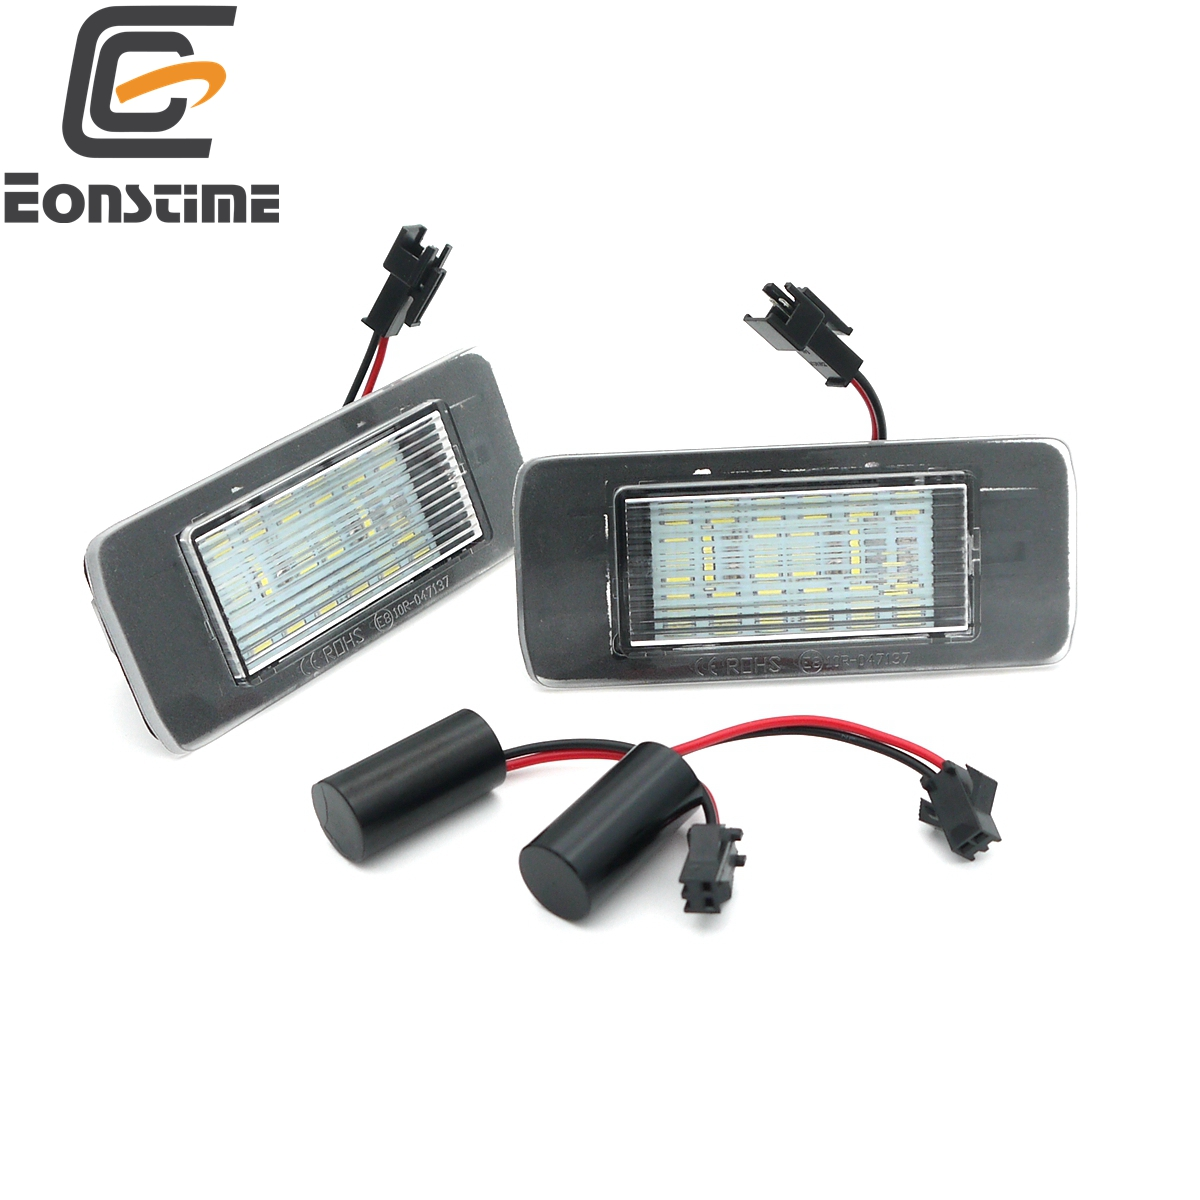 Eonstime Canbus 2pcs 18SMD LED Number License Plate Light Bulbs for Opel Vauxhall Astra J Sports Tourer Zafira Tourer C 09-15 2pcs 18smd no error led number license plate light lamp oem direct fit for chevrolet cruze all cars 2009 canbus with decoder